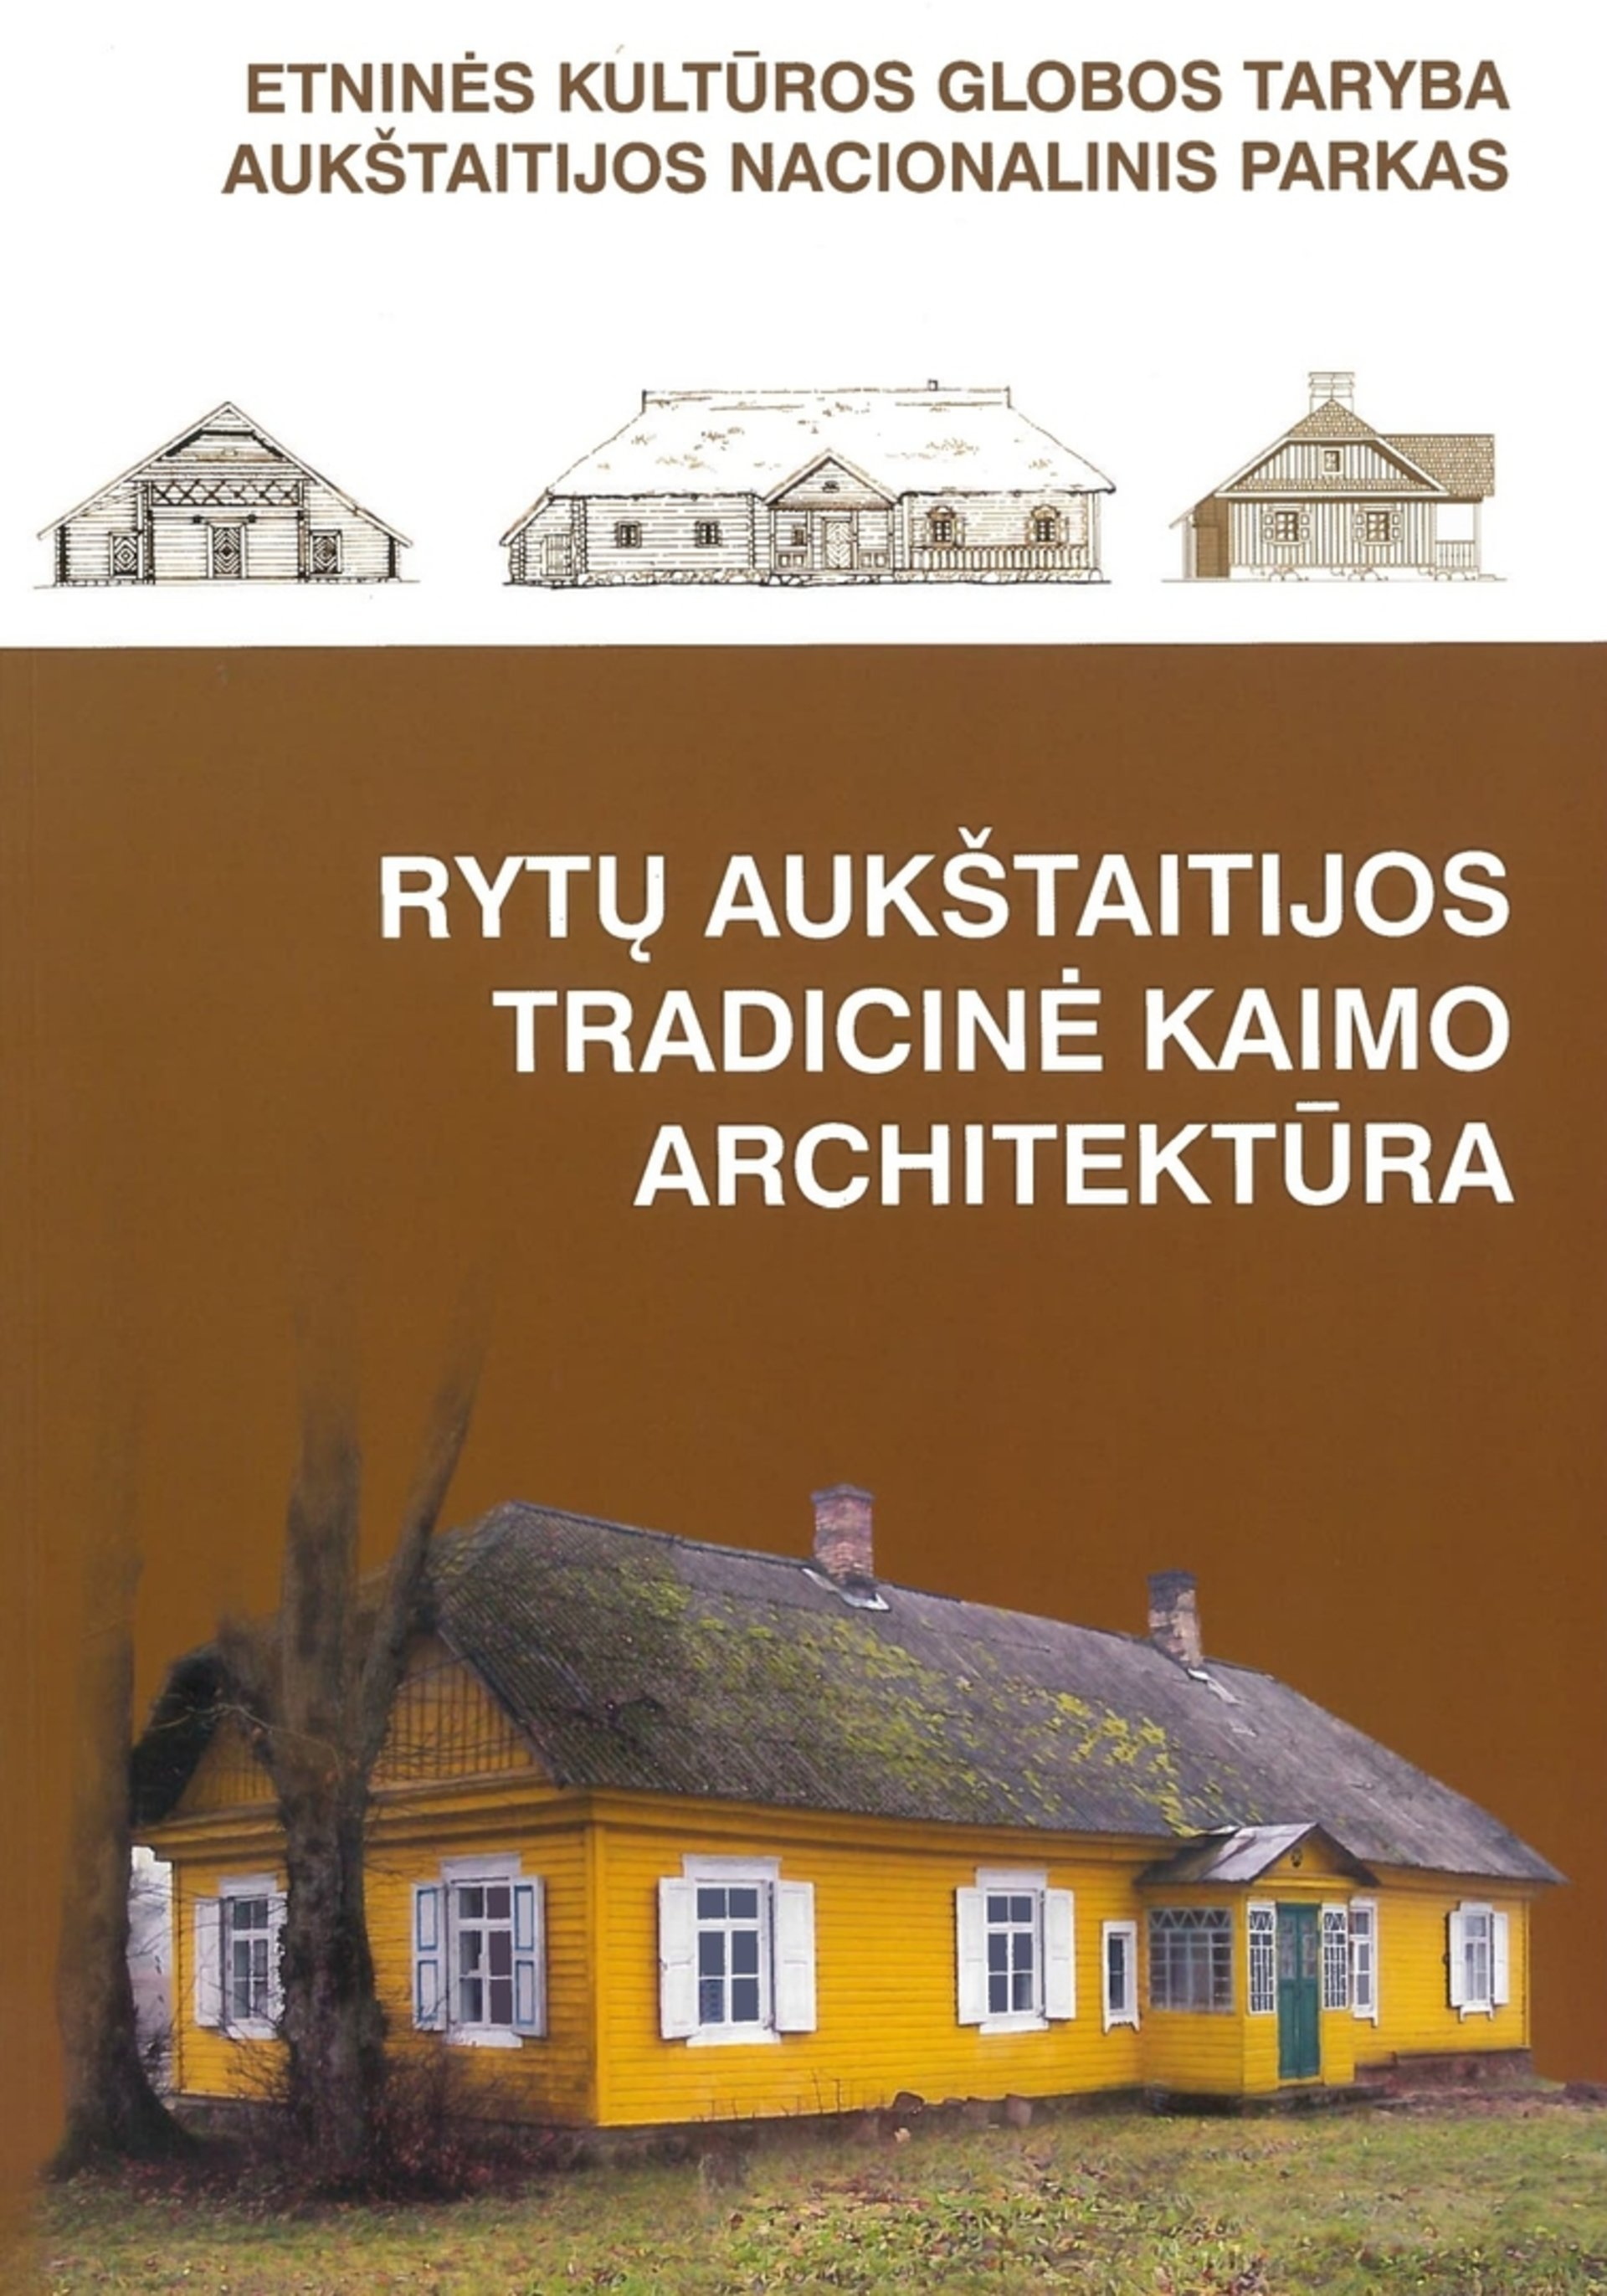 Eastern Aukstaitija traditional rural architecture